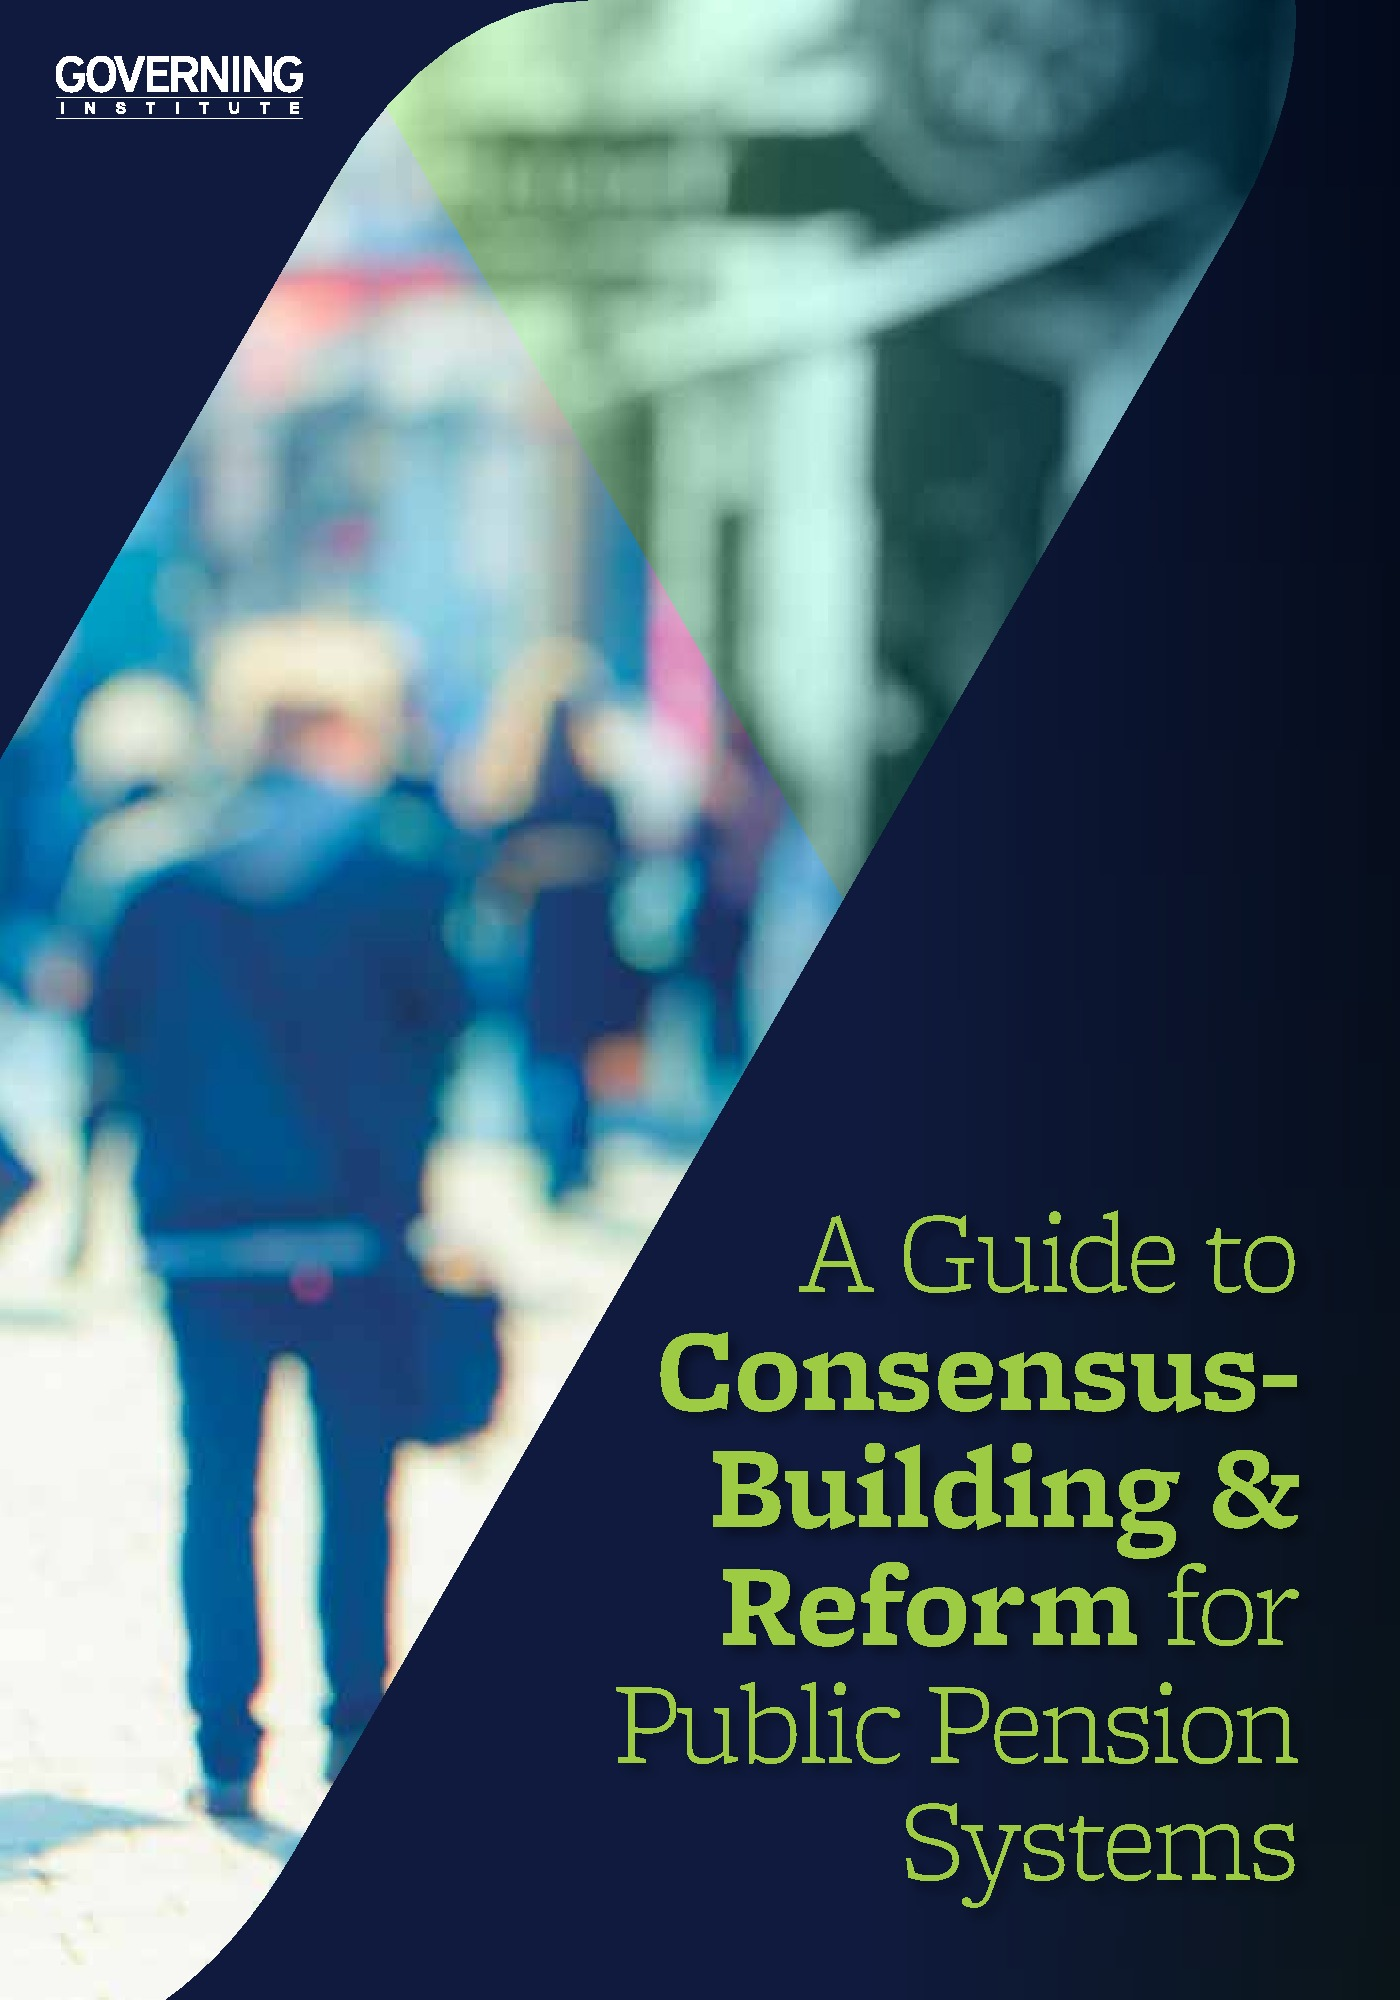 A Guide to Consensus-Building and Reform for Public Pension Systems